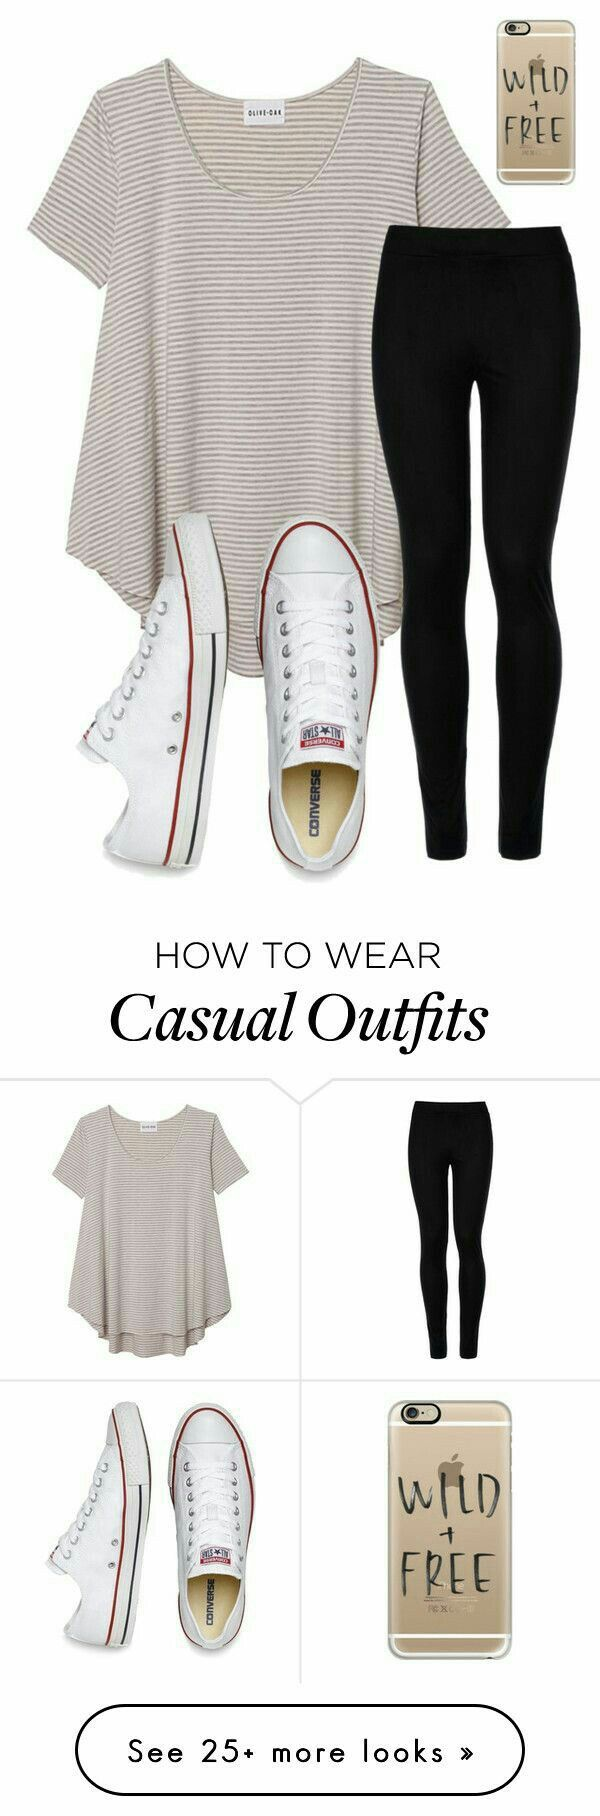 Pin by brianna trent on outfitsclothes in pinterest casual